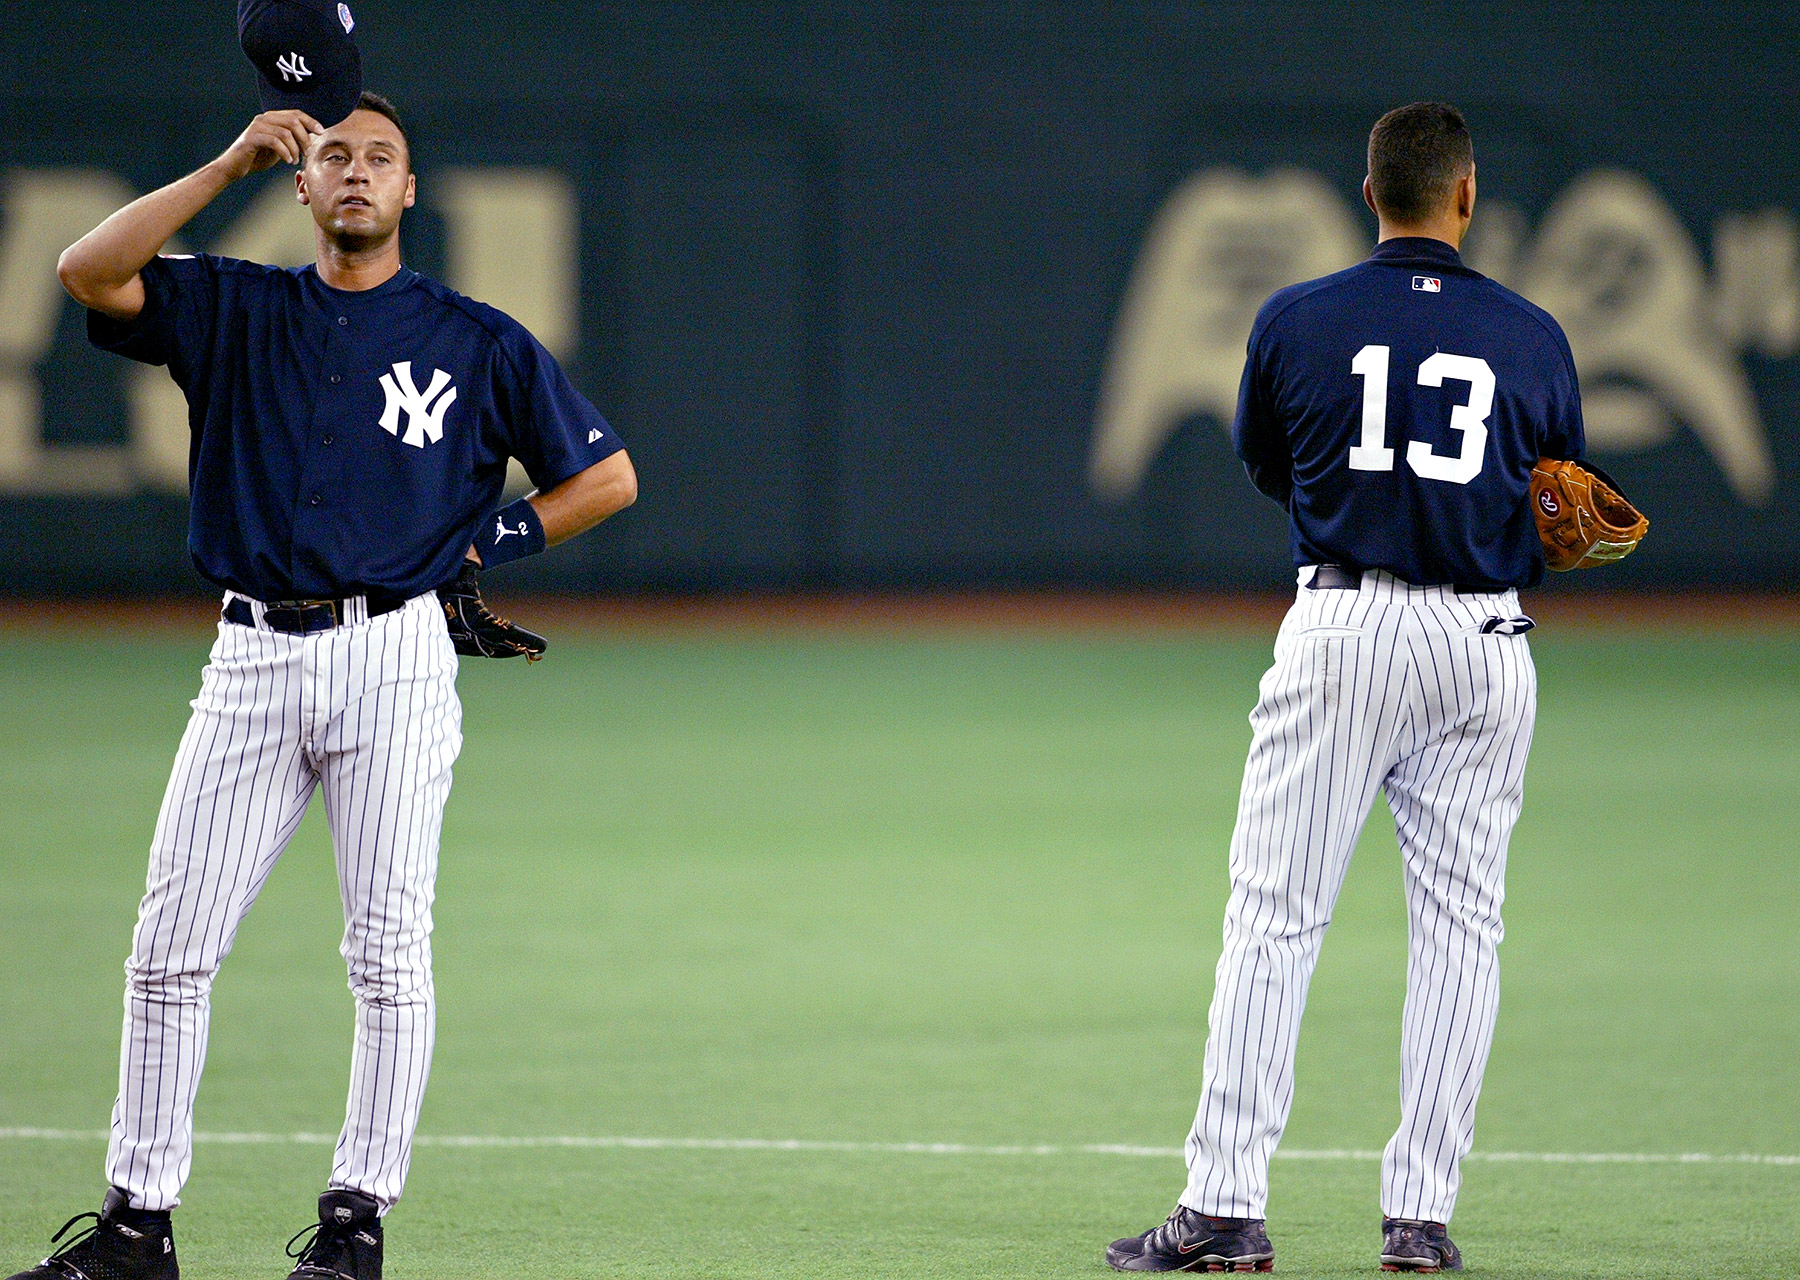 Jeter and Rodriguez